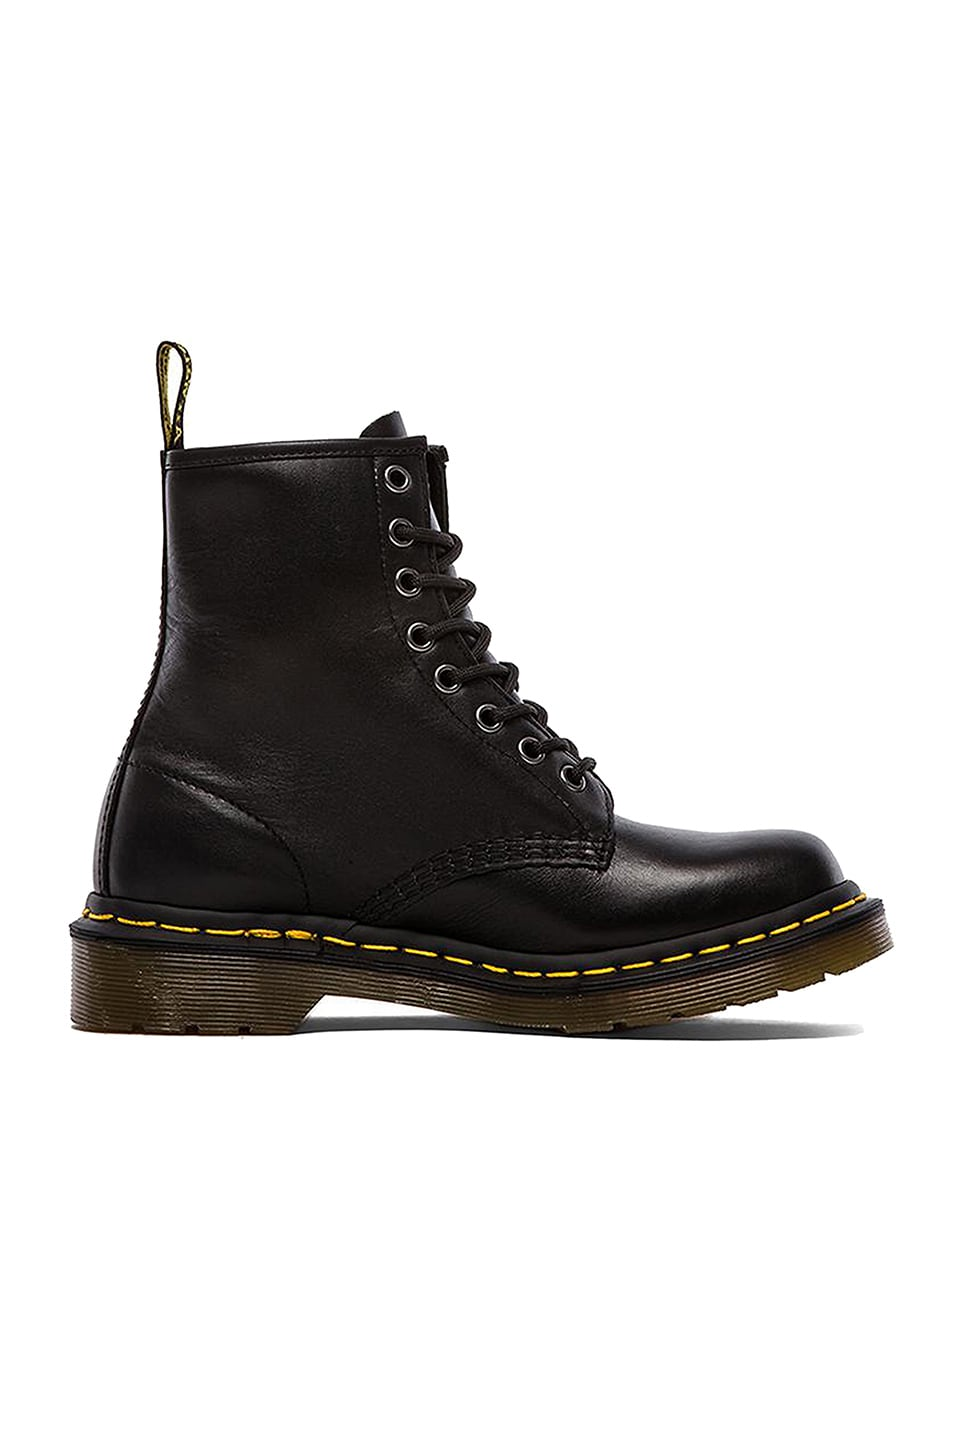 Dr. Martens BOTTINES ICONIC 8 EYE